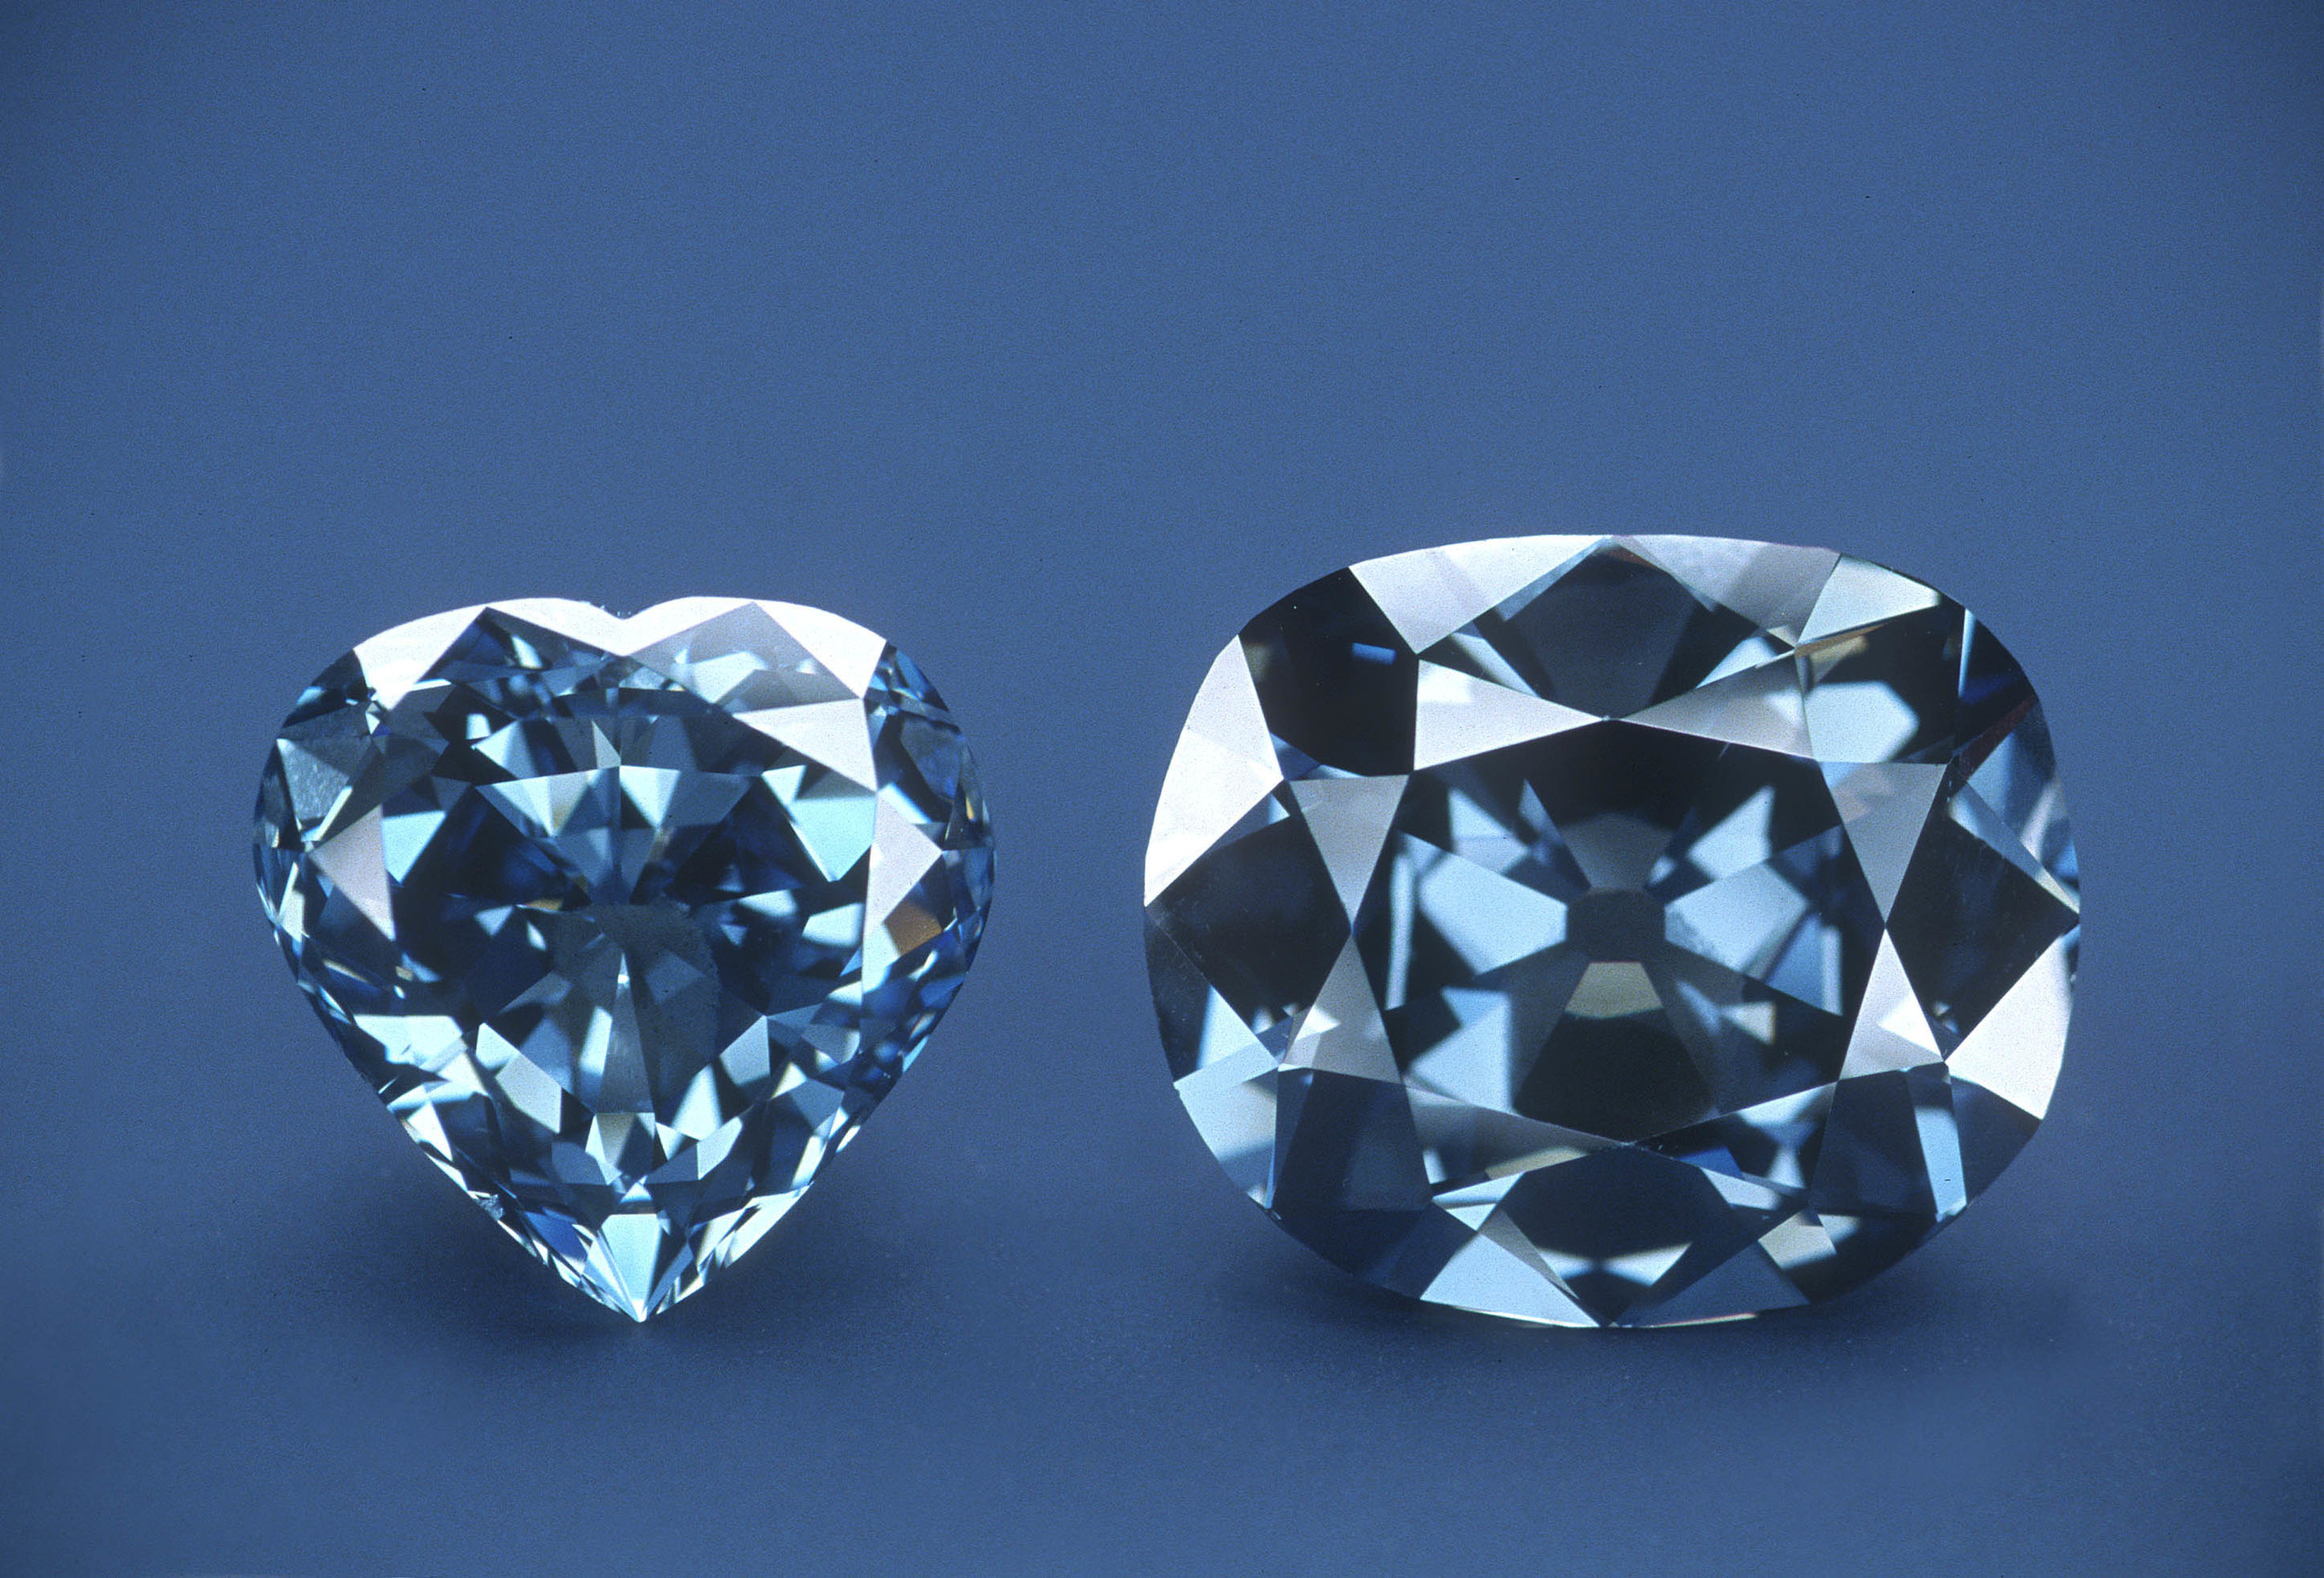 The Hope Diamond, right, without its white-diamond pendant, and the 30.62 carat Blue Heart Diamond. Photo: Smithsonian National Museum of Natural History.